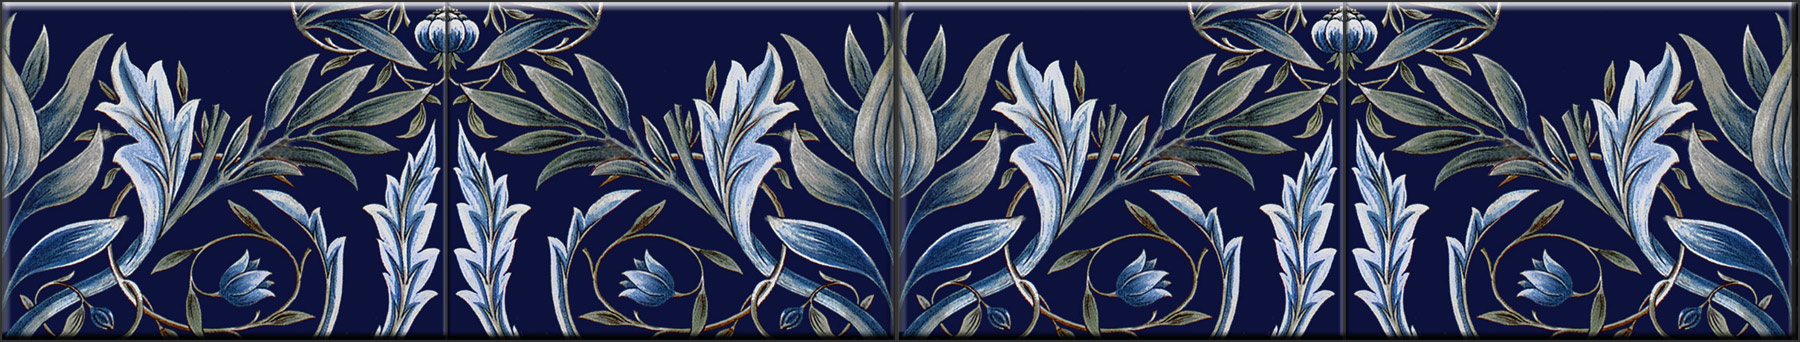 Membland border tiles, 8 x 6 inches